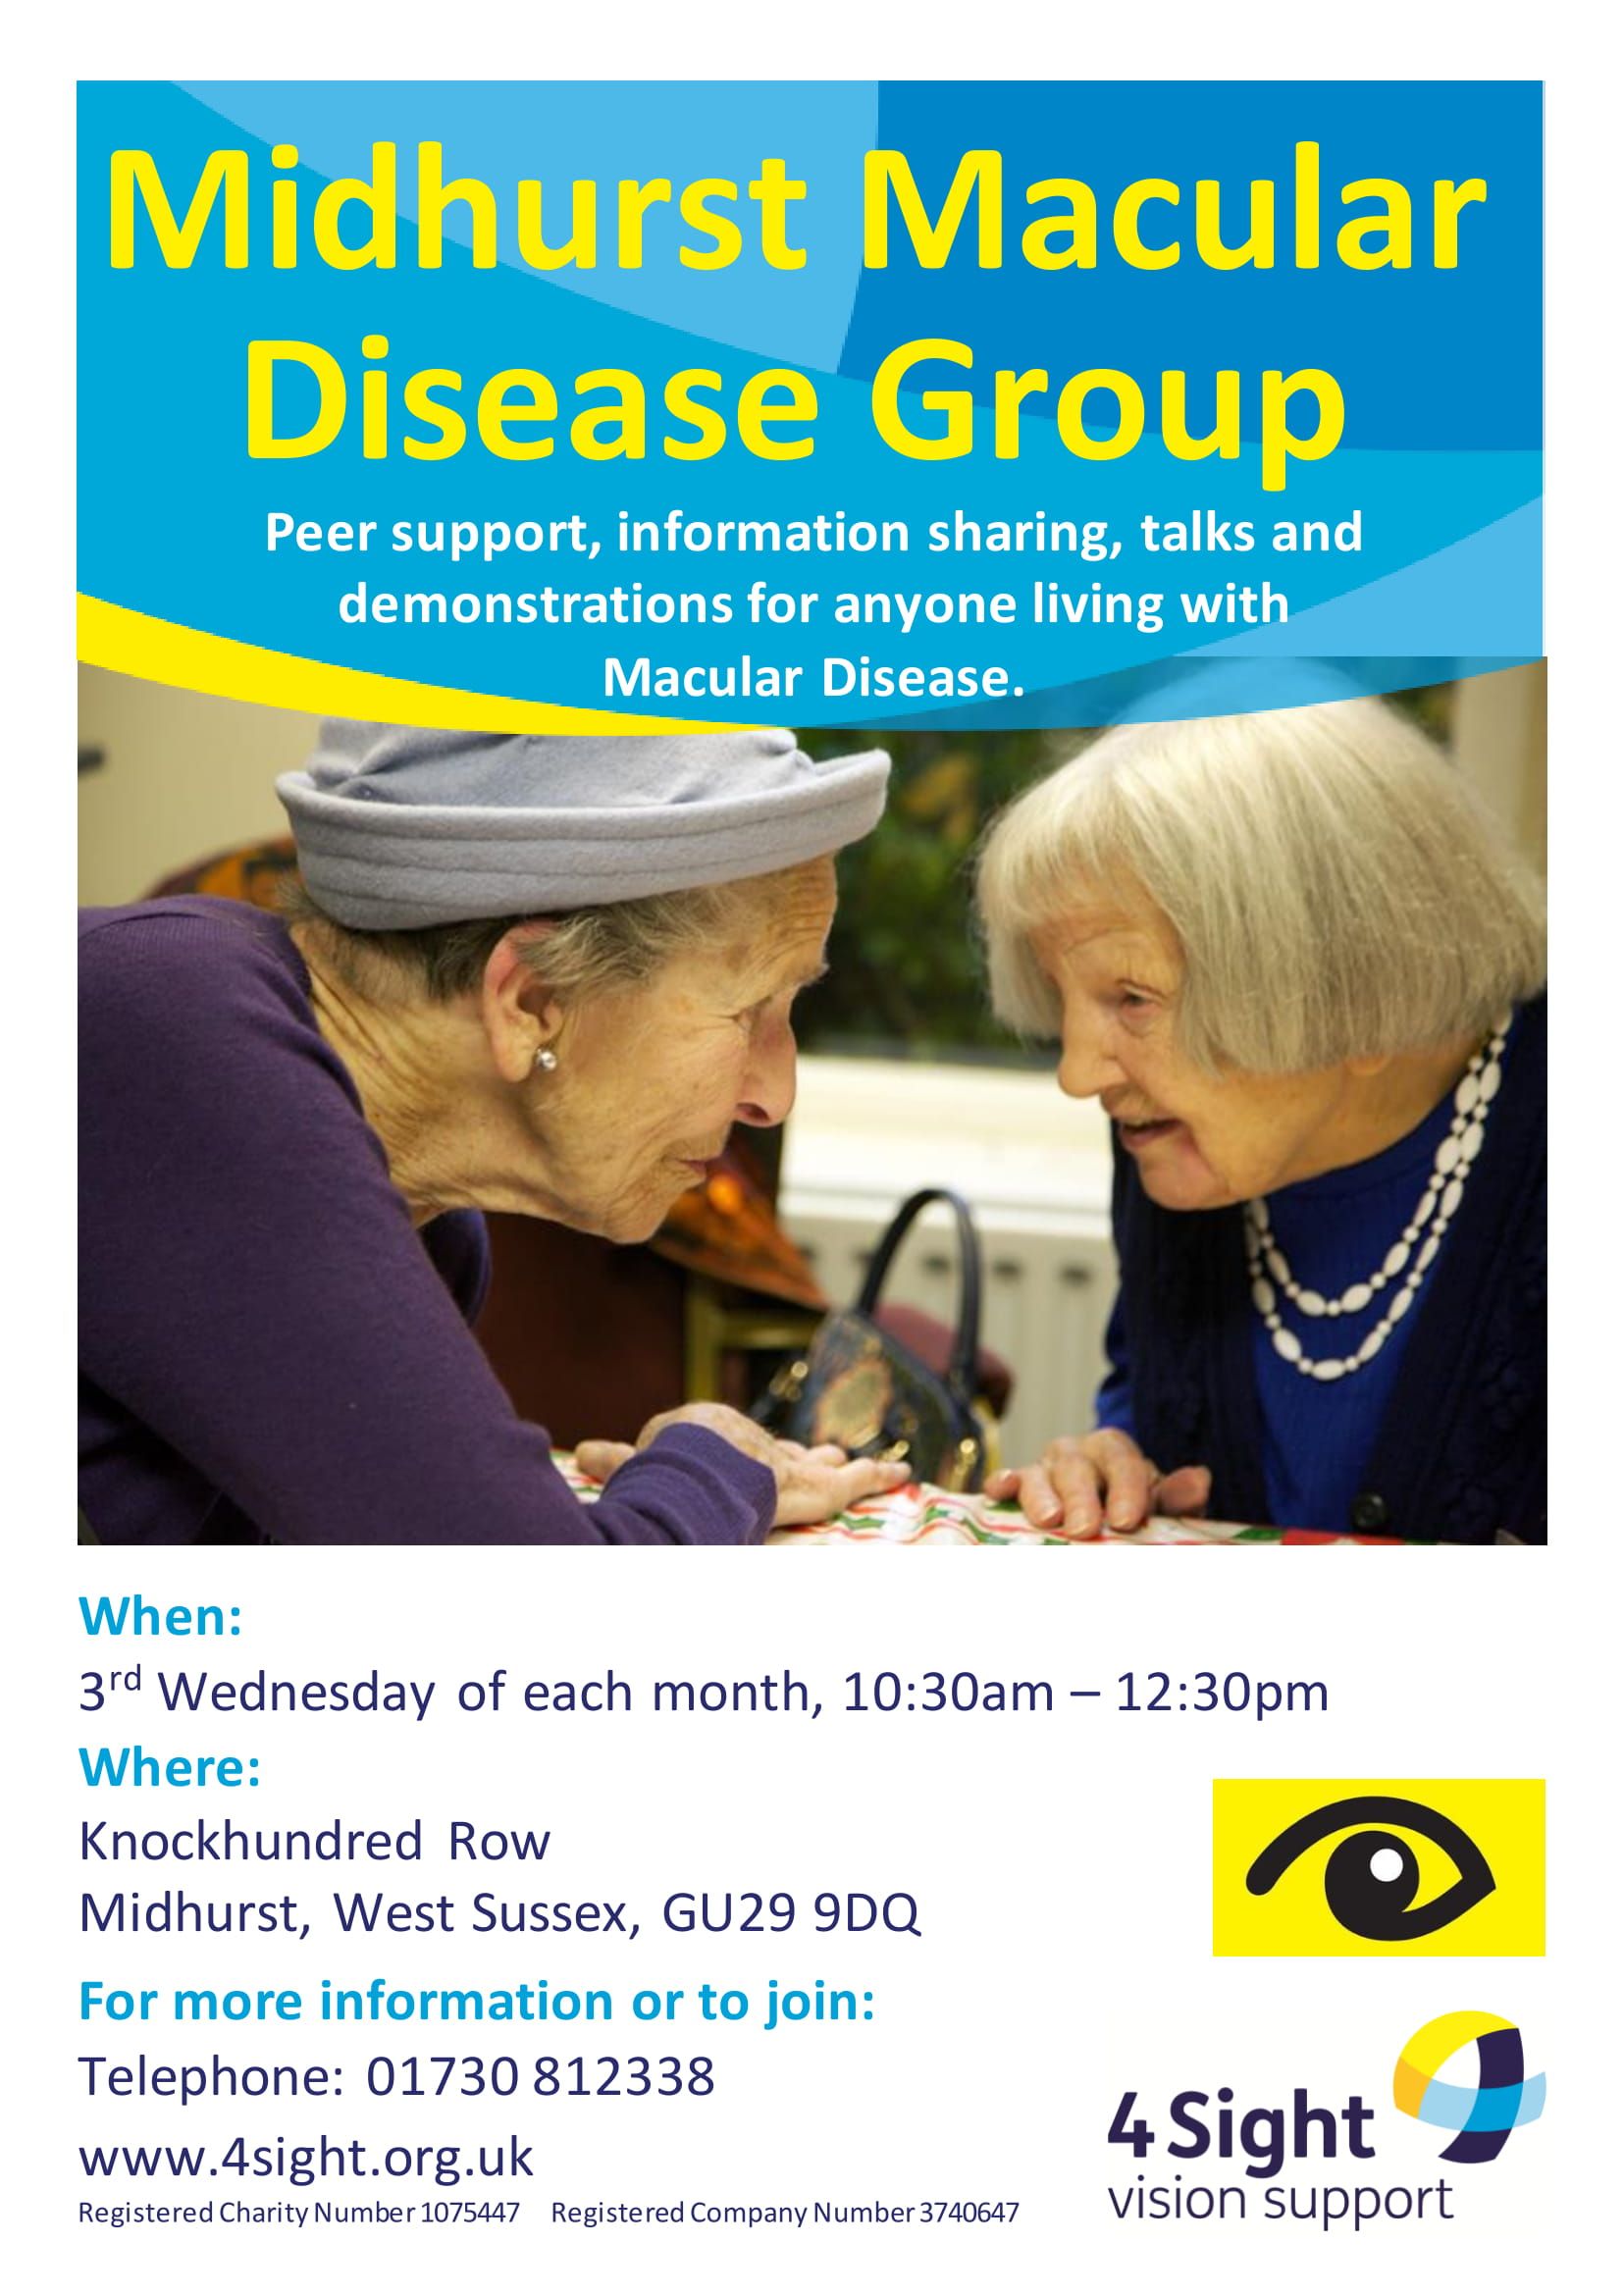 Midhurst Macular Disease Group-1